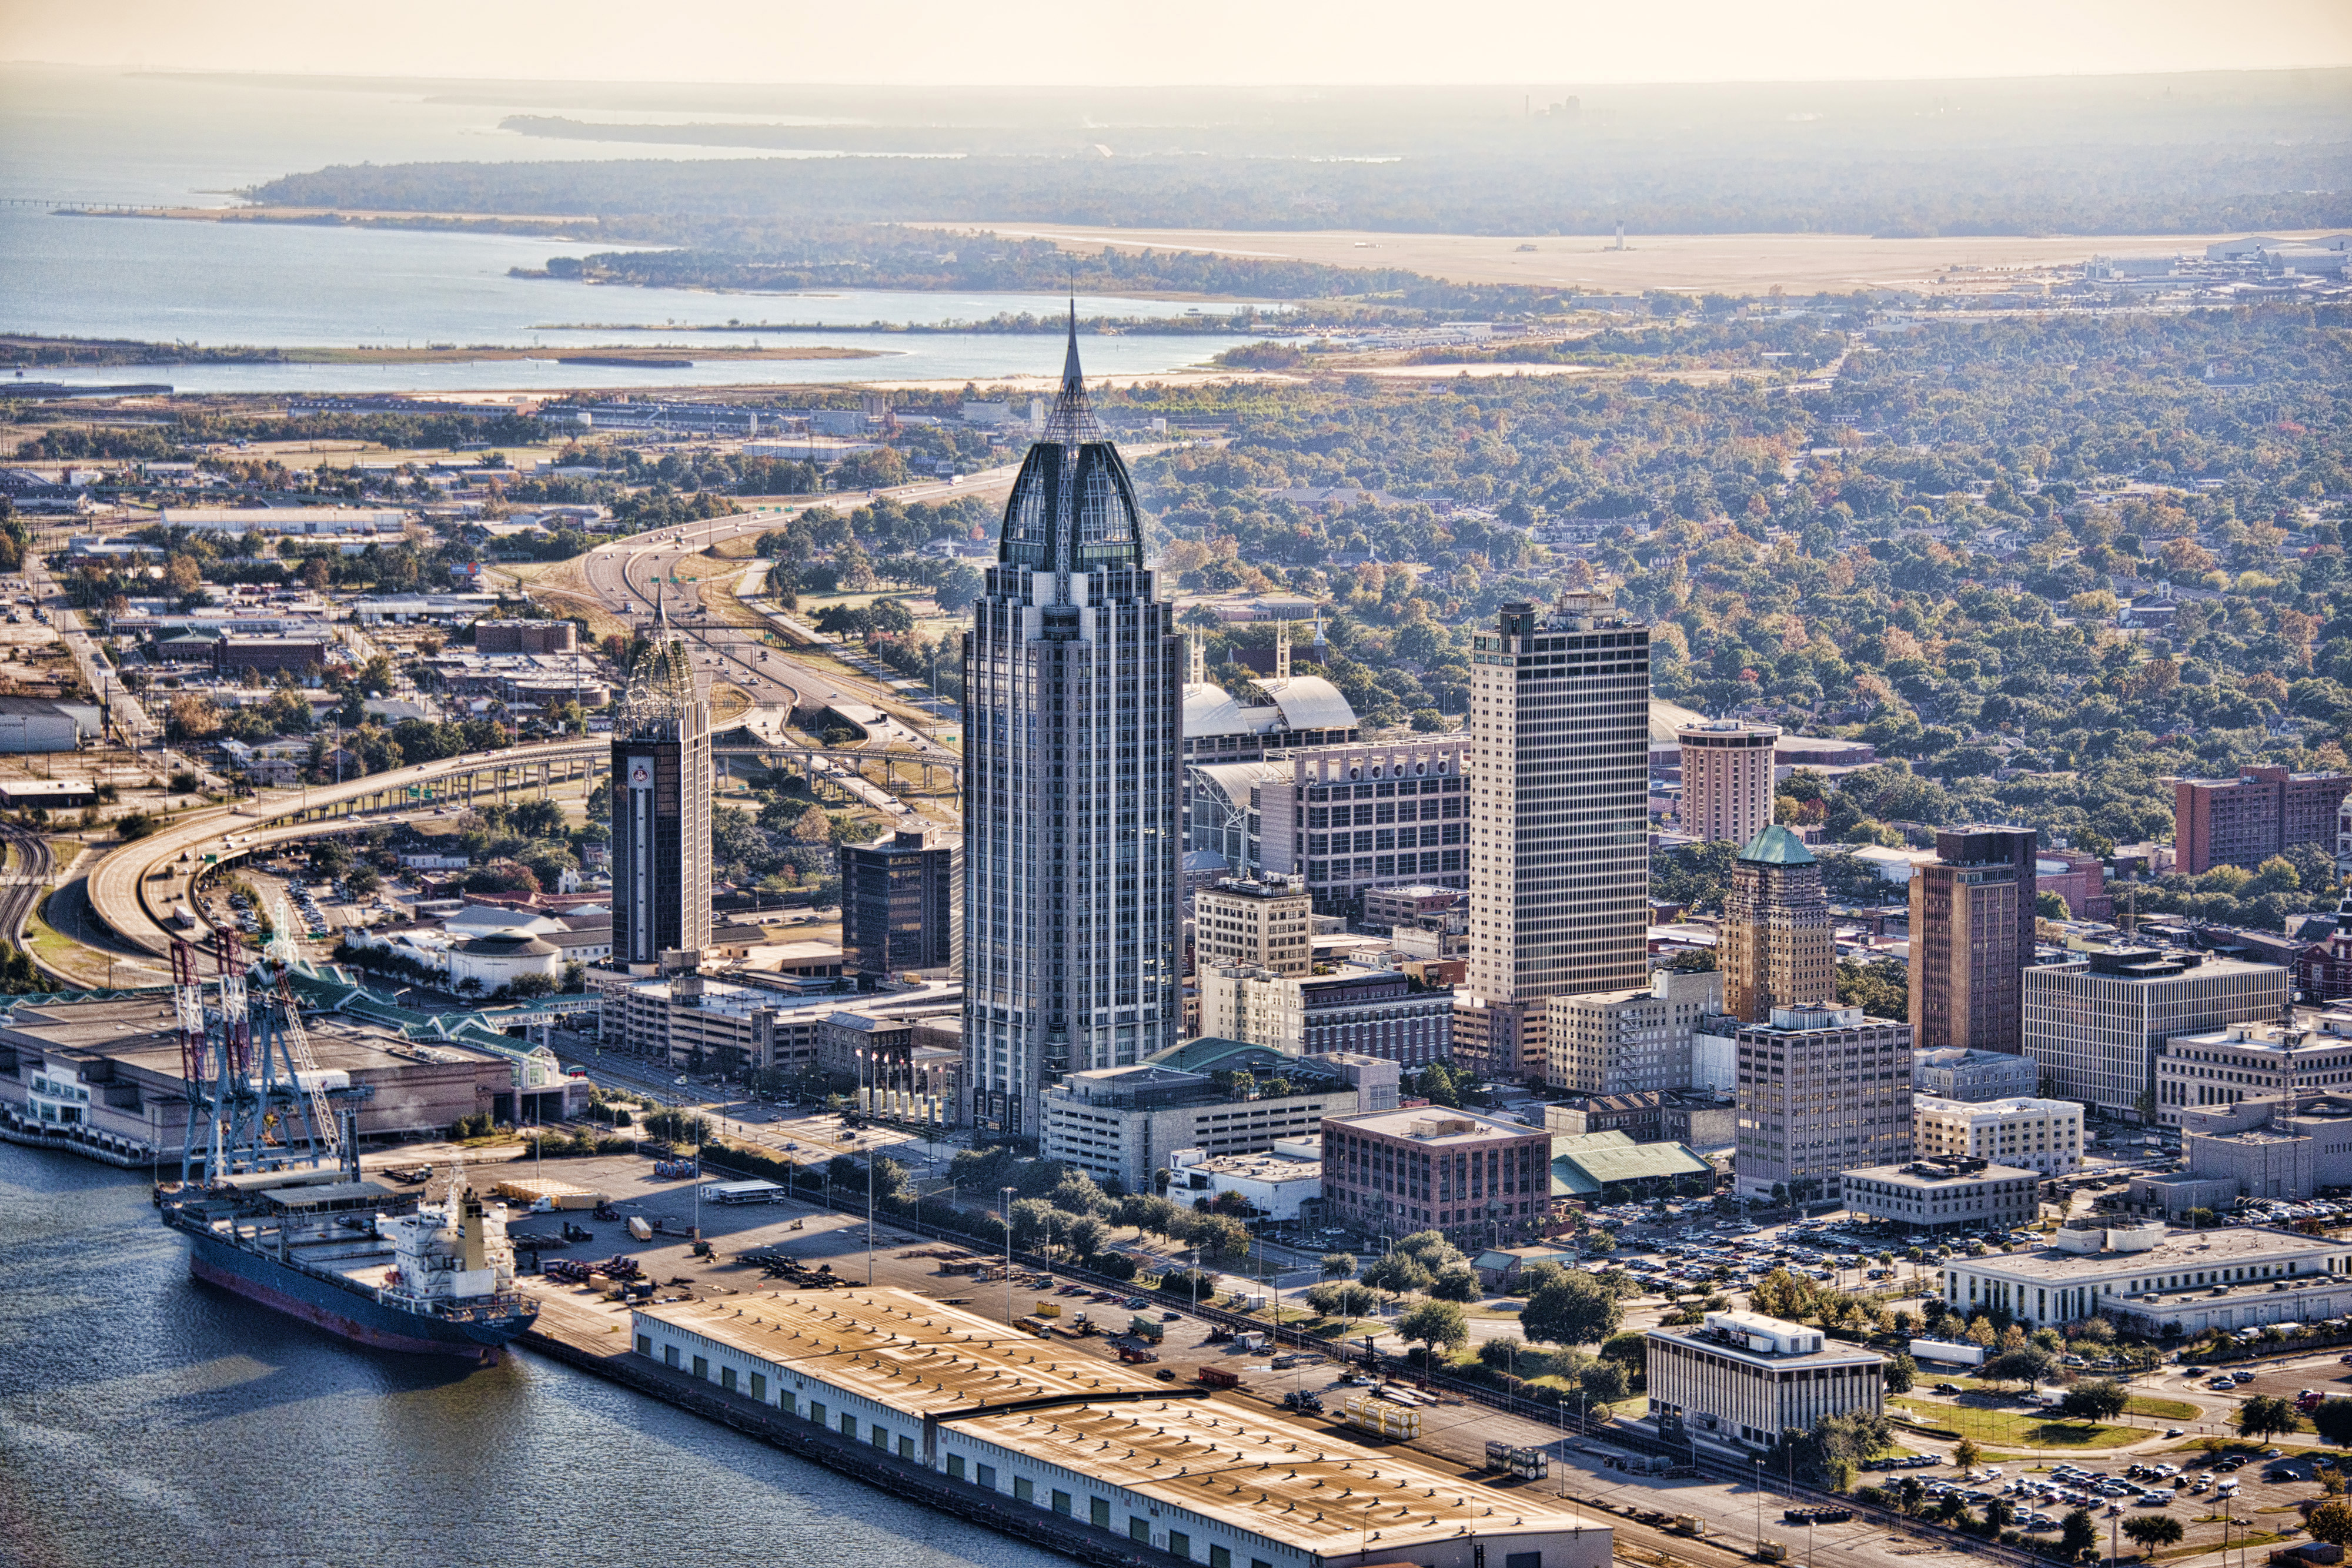 downtown Mobile, Alabama